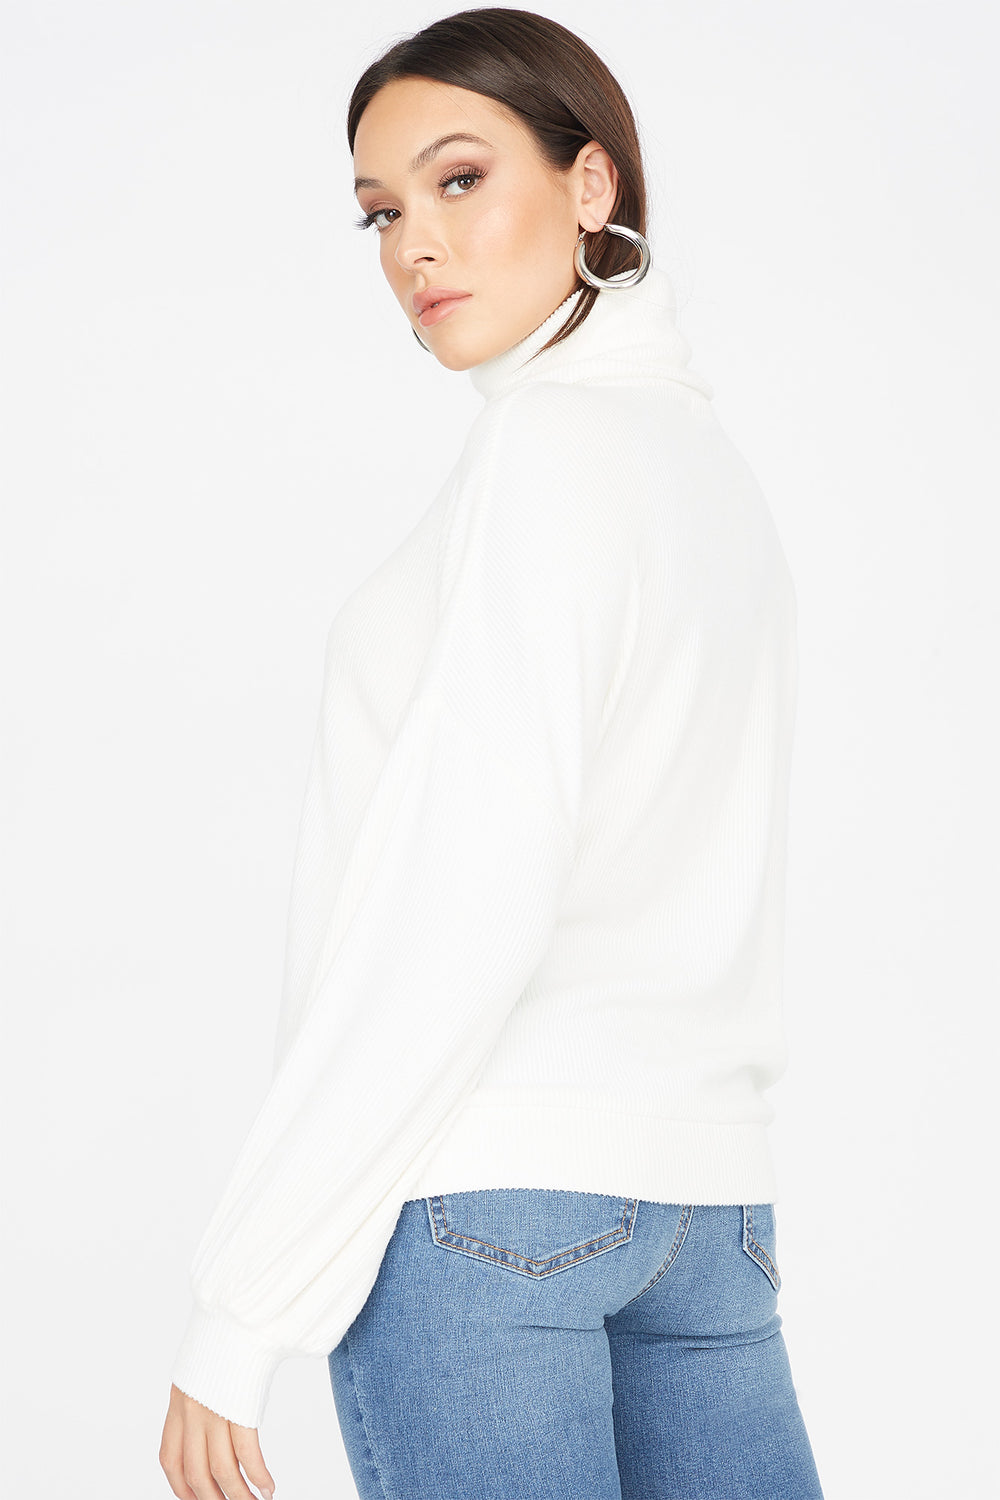 Knit Turtleneck Long Dolman Sleeve Top Cream